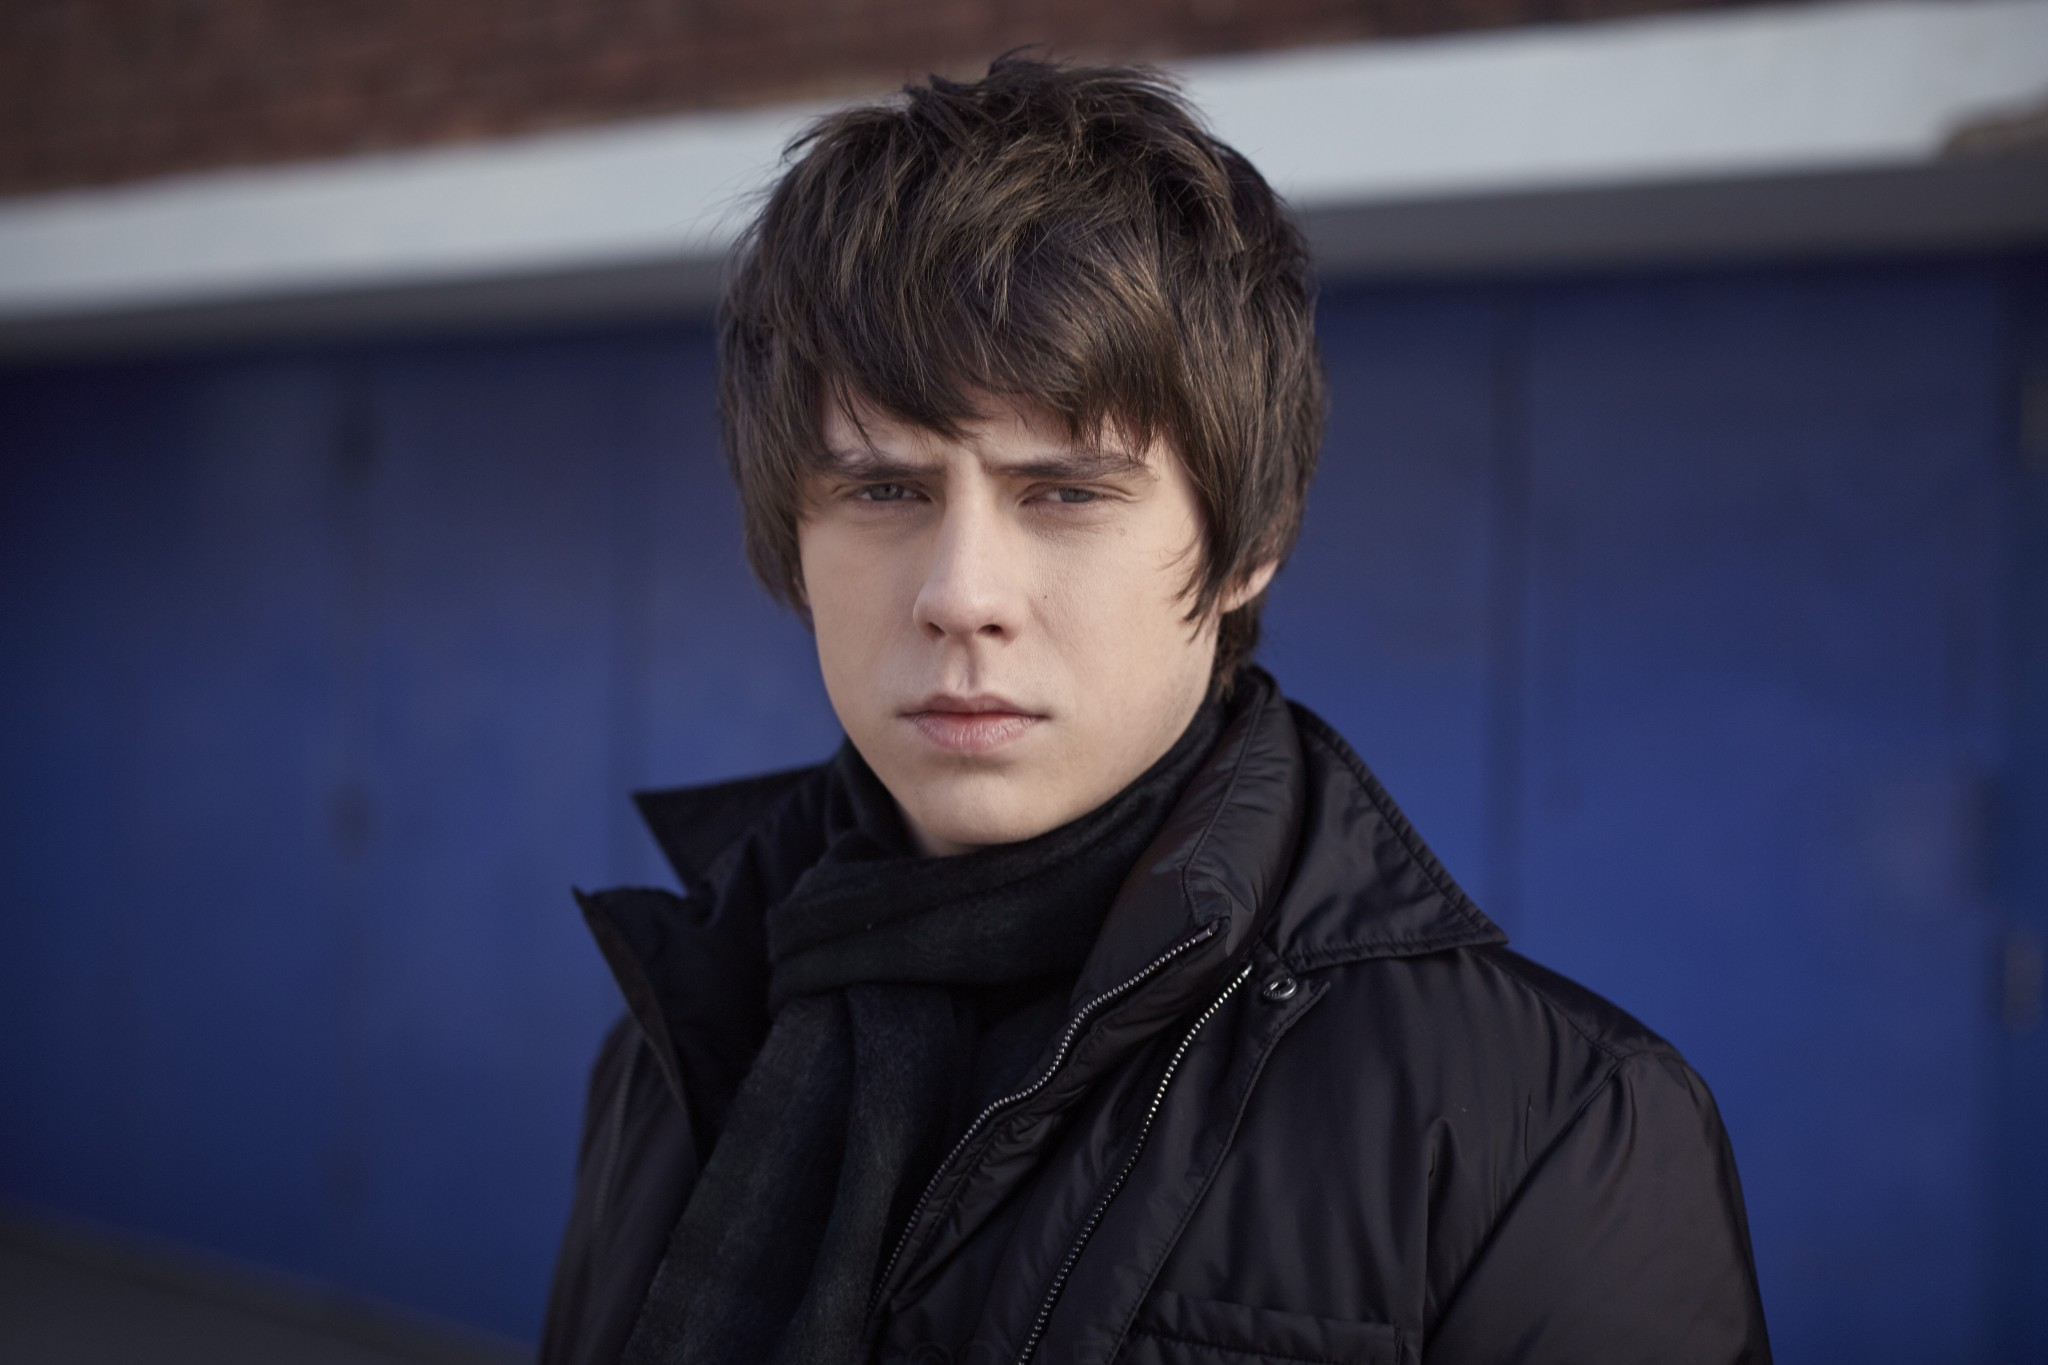 Lightning Bolt singer Jake Bugg